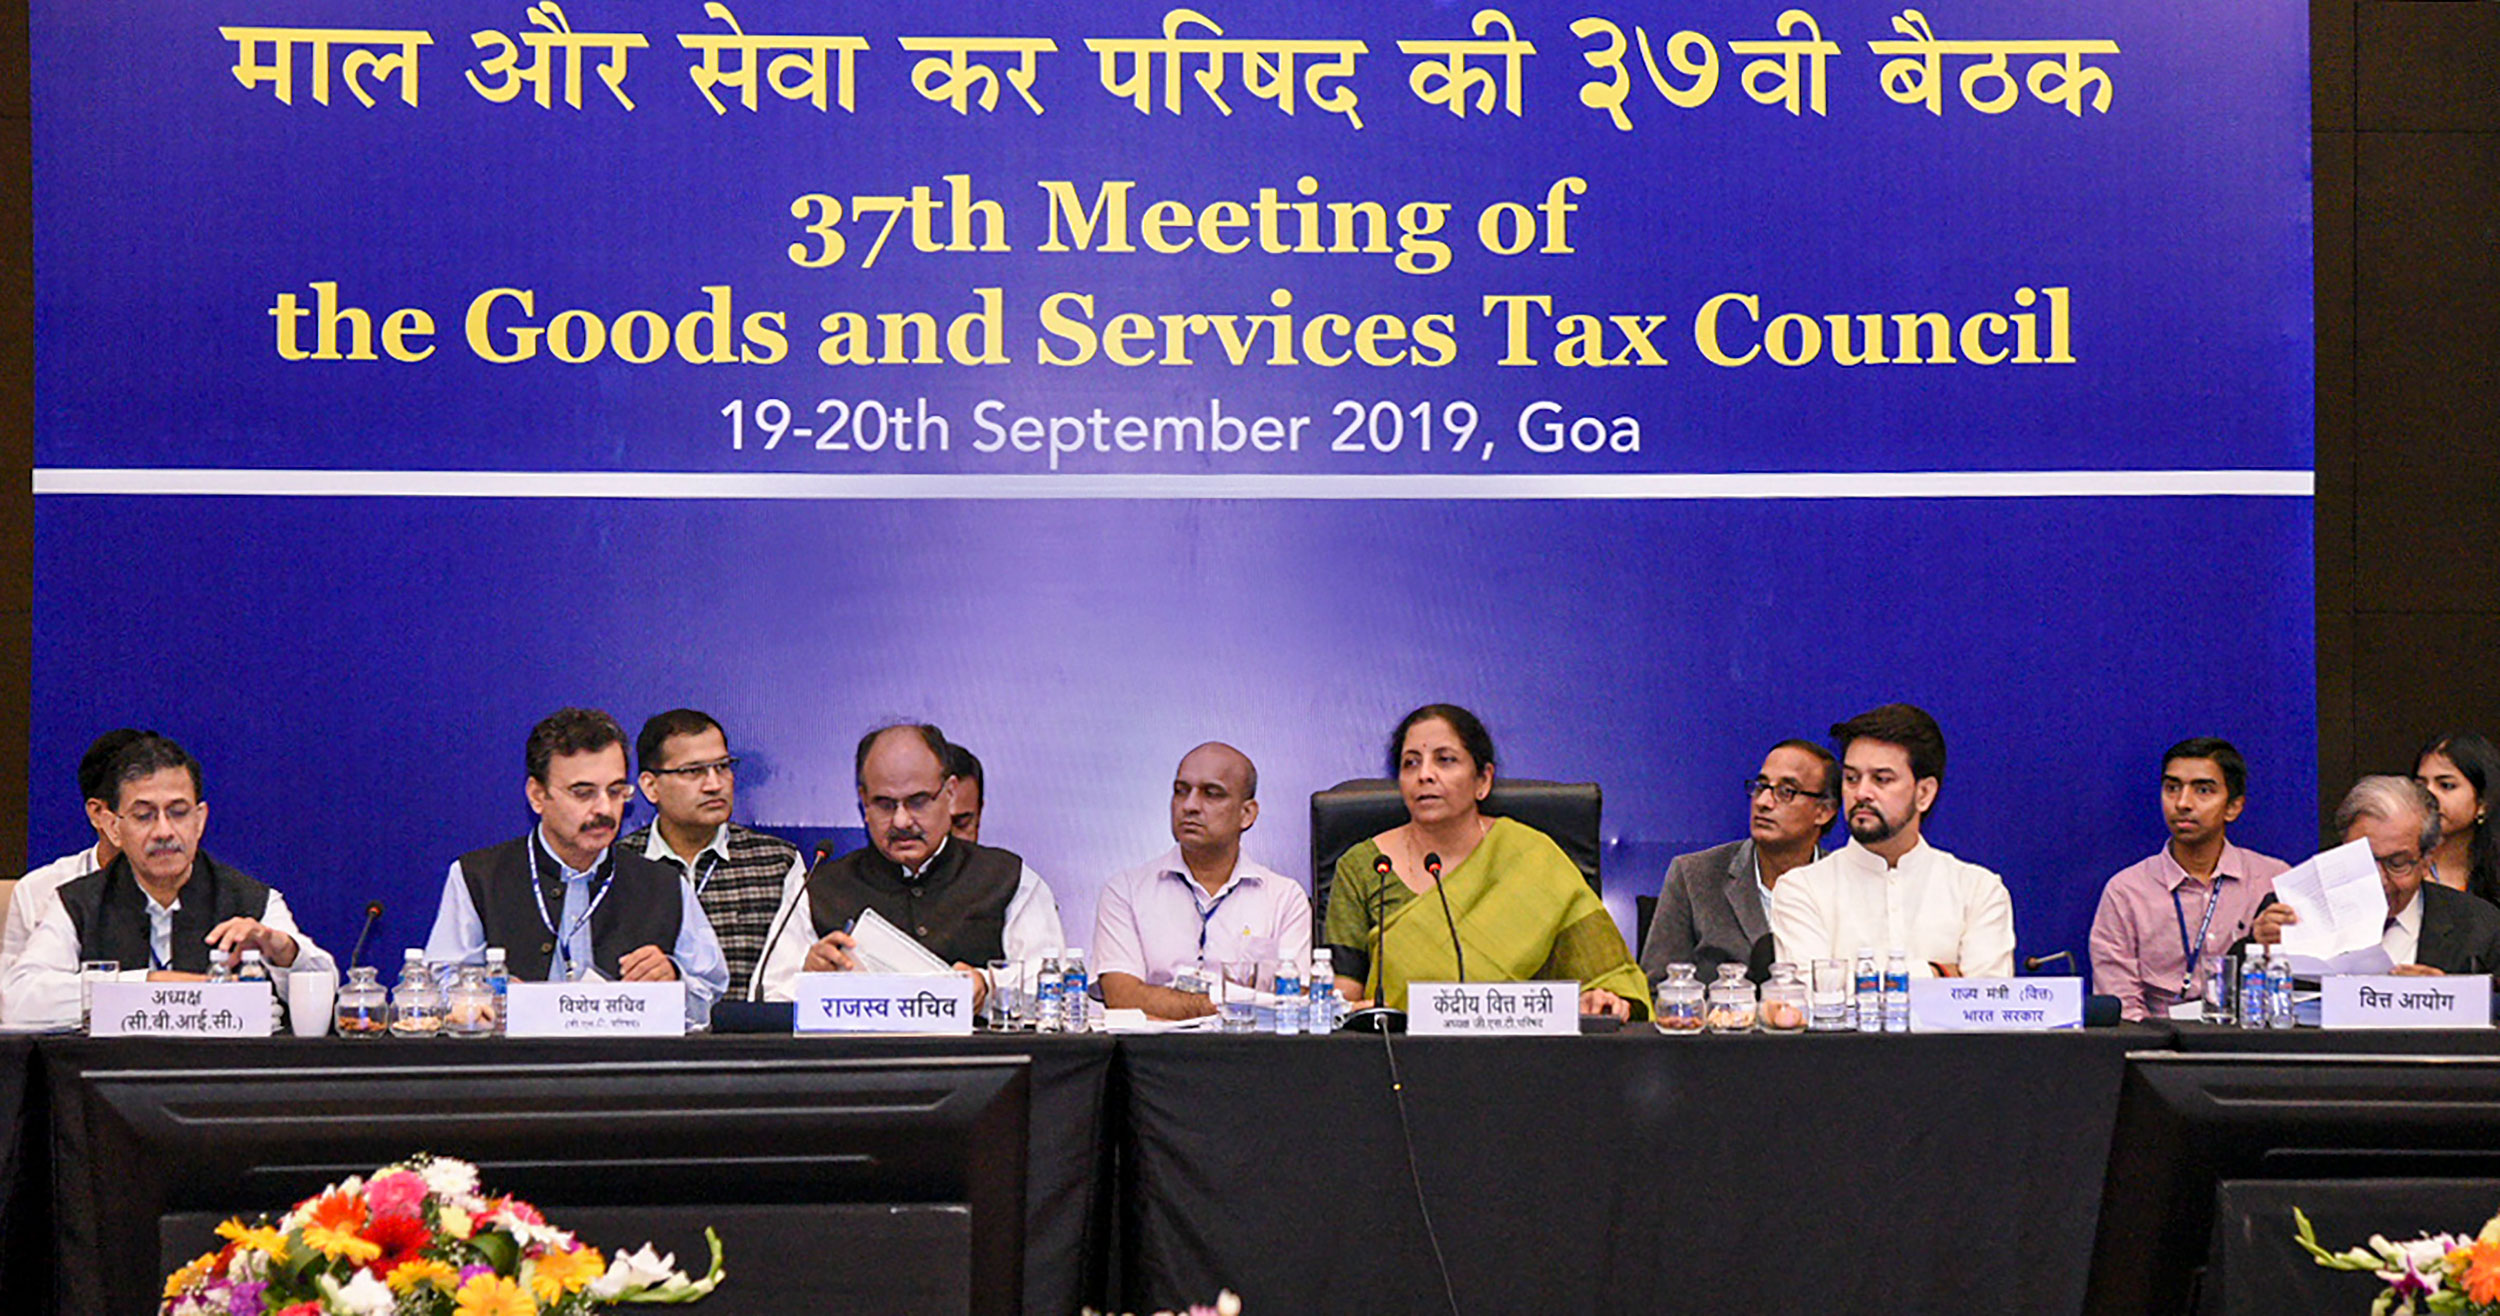 The GST Council meeting on December 18 will examine various measures to boost revenue collection, including review of the tax structure, compensation cess rates and exempted items.